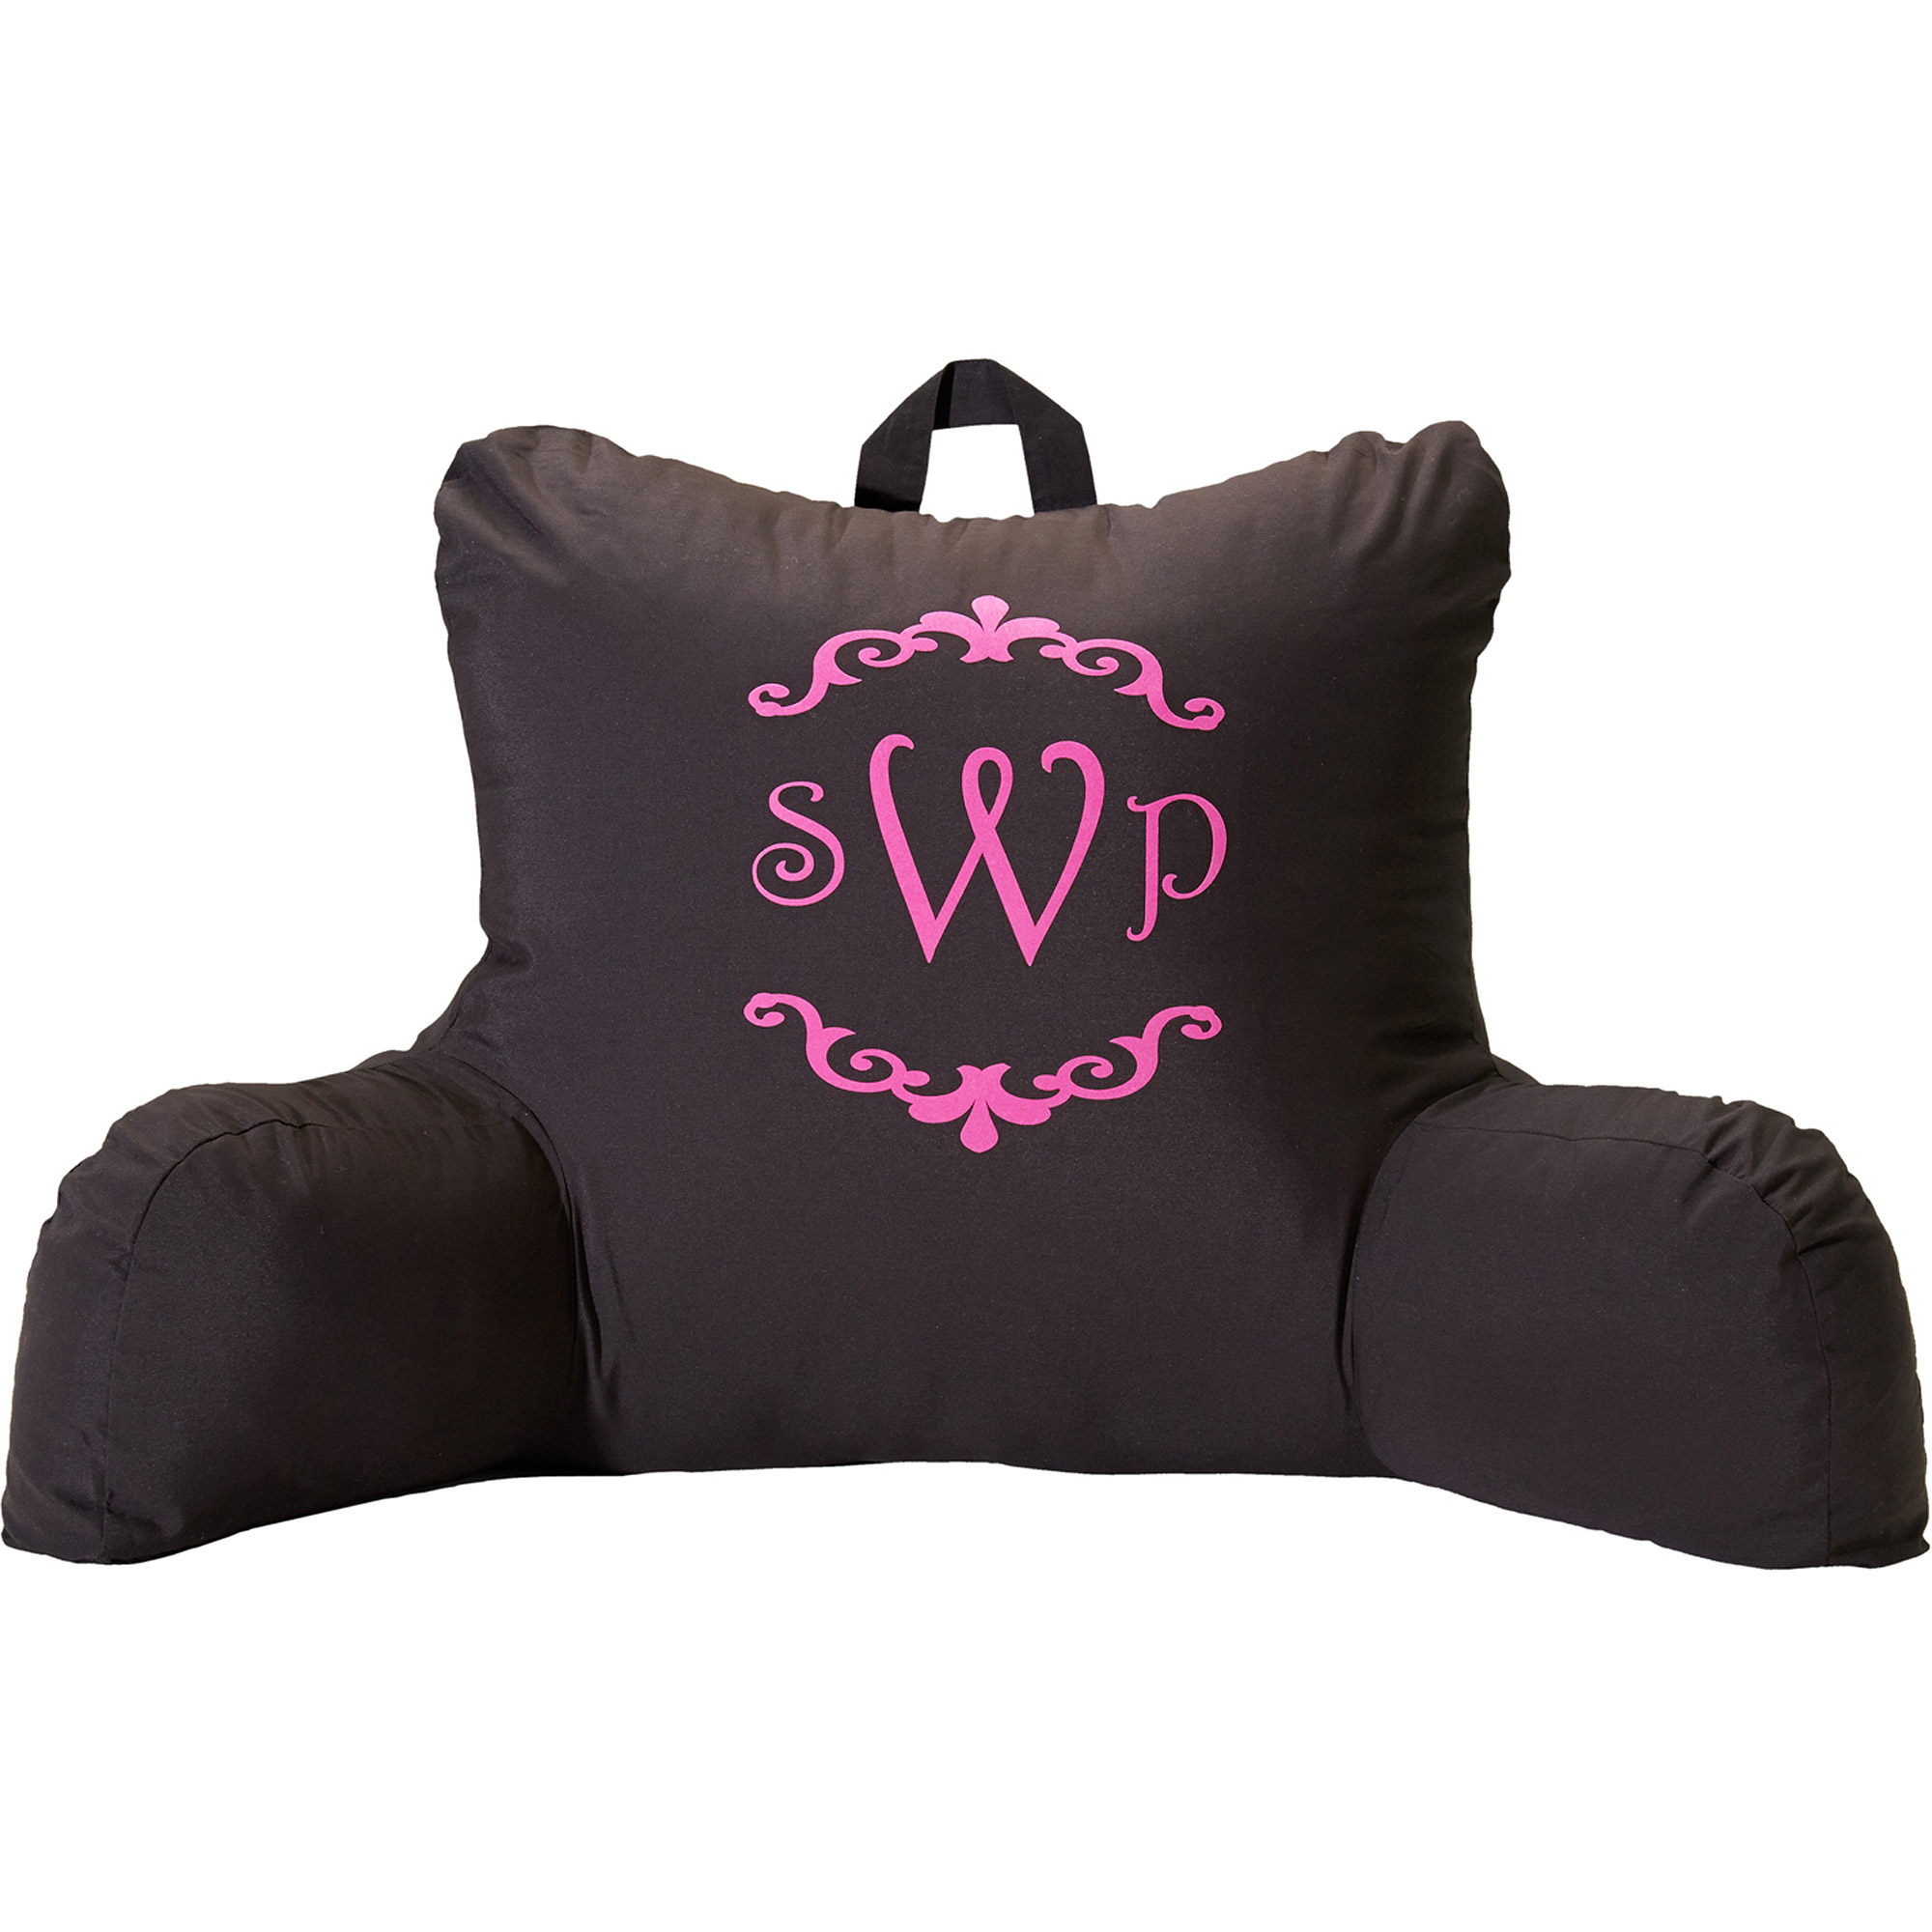 Bed Pillow with Arms | Target Boyfriend Pillow | Bedrest Lounger